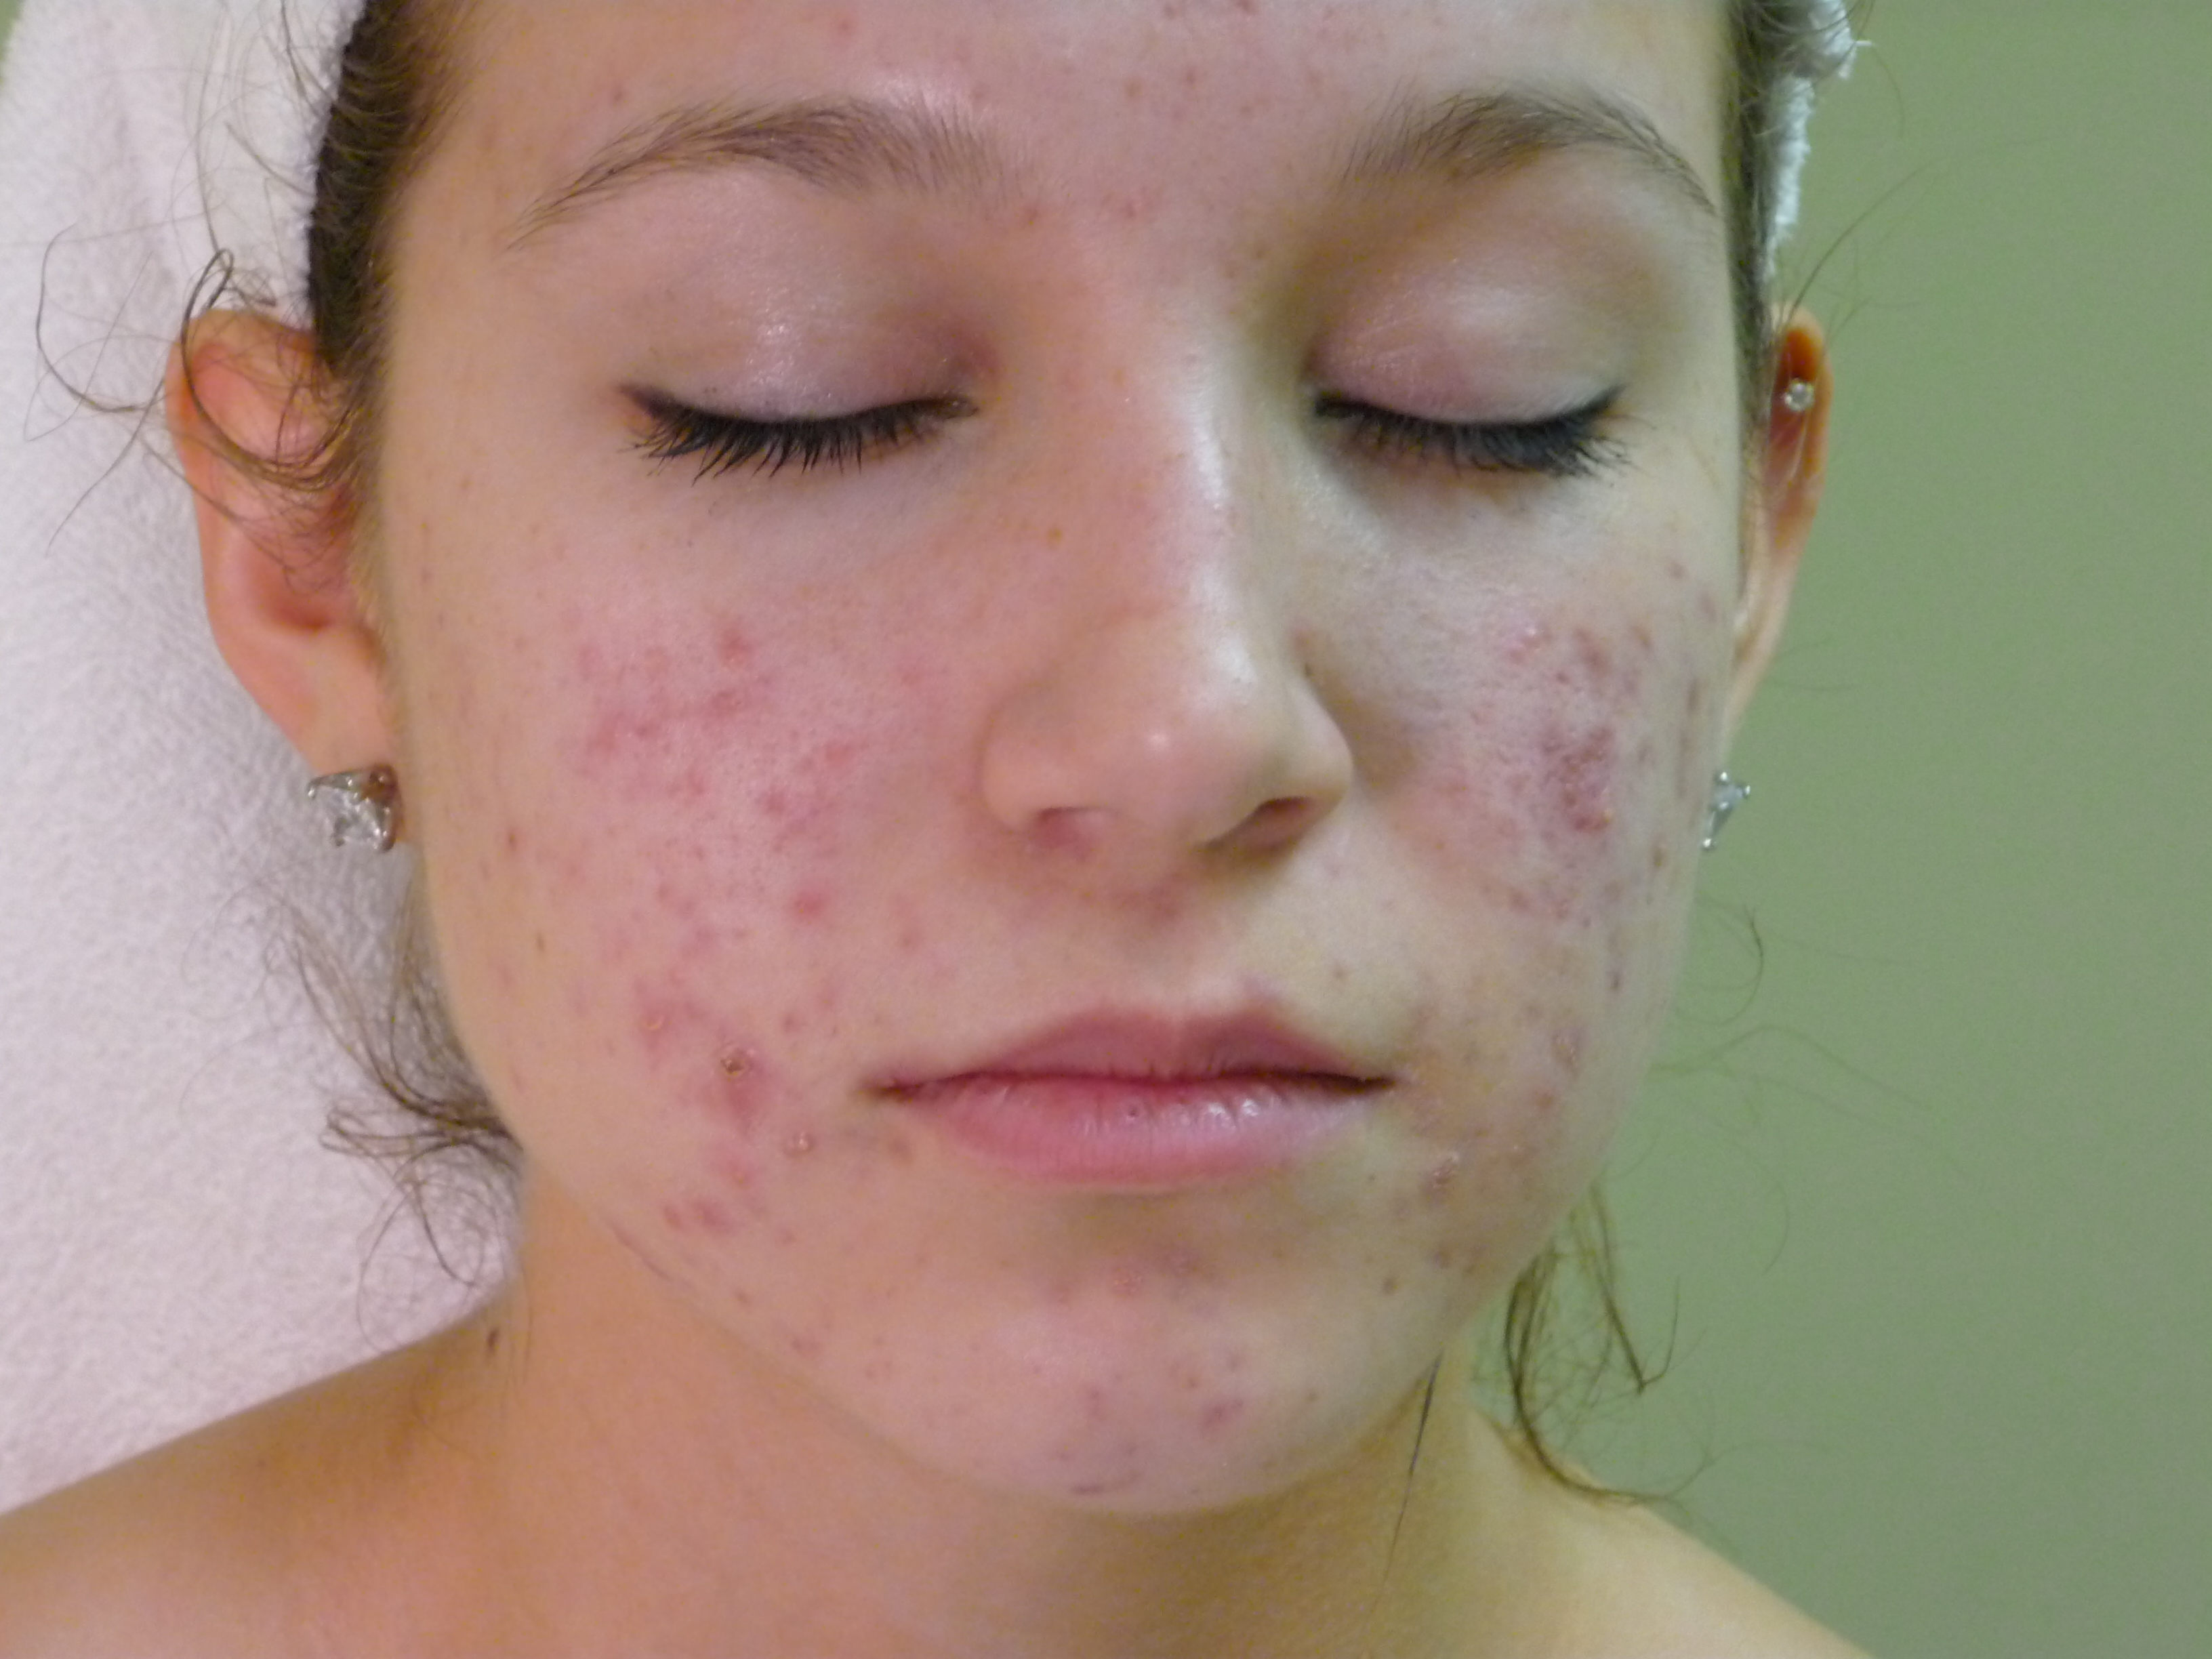 Dealing With Acne Scars